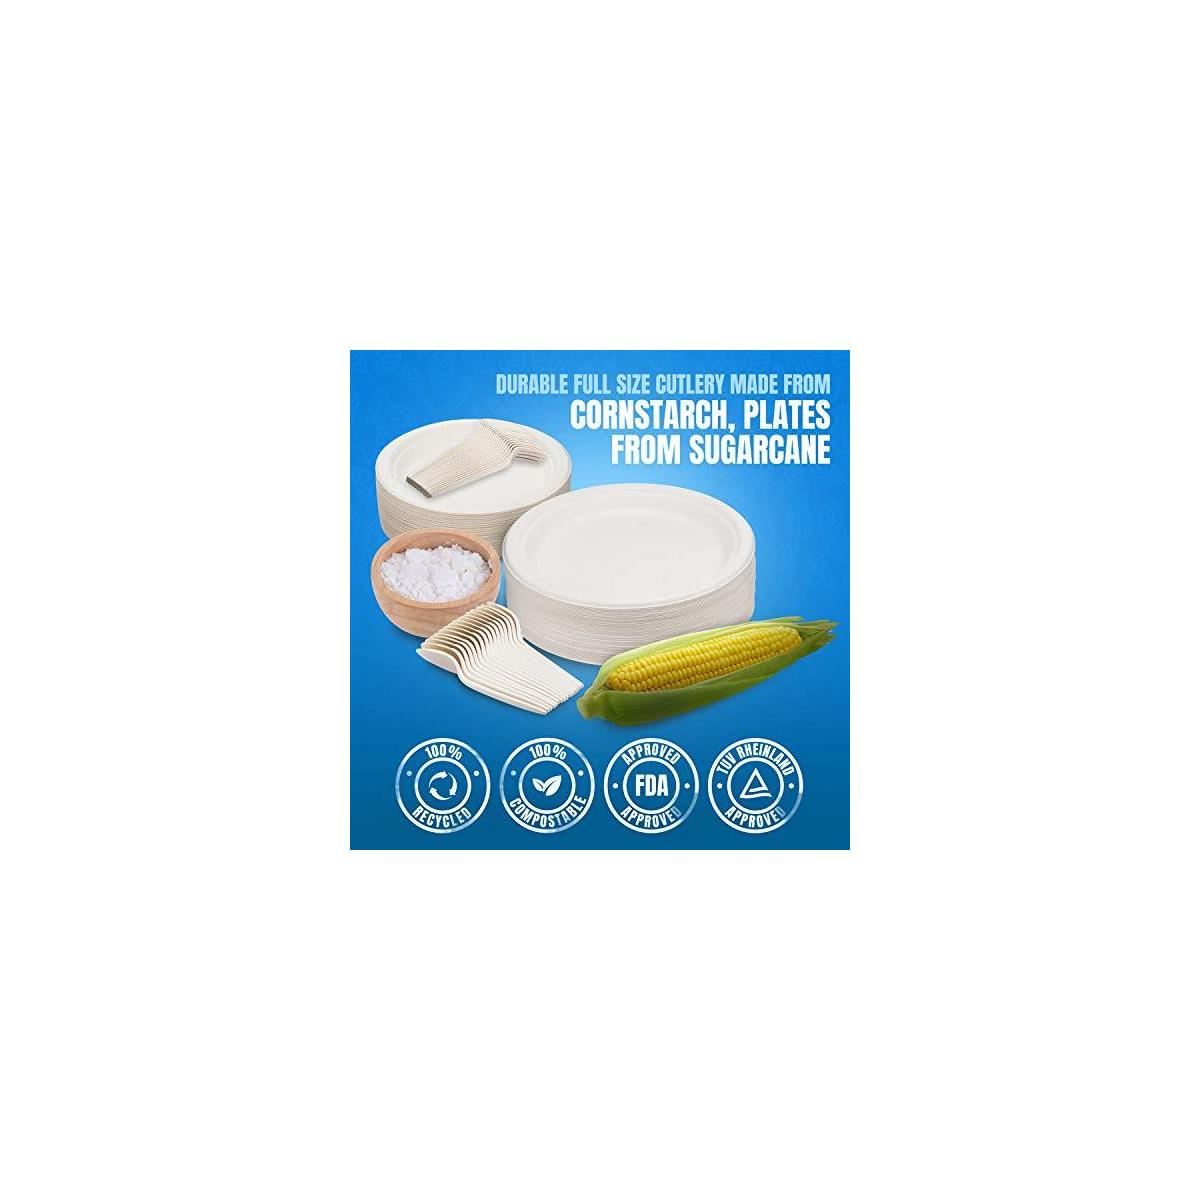 250Pcs Compostable paper plates, Biodegradable, Disposable, Heavy duty, Recycled paper plates, eco-friendly disposable utensils, Dinner Plates, Dessert Plates, Forks, Knives & Spoons (50 Each)